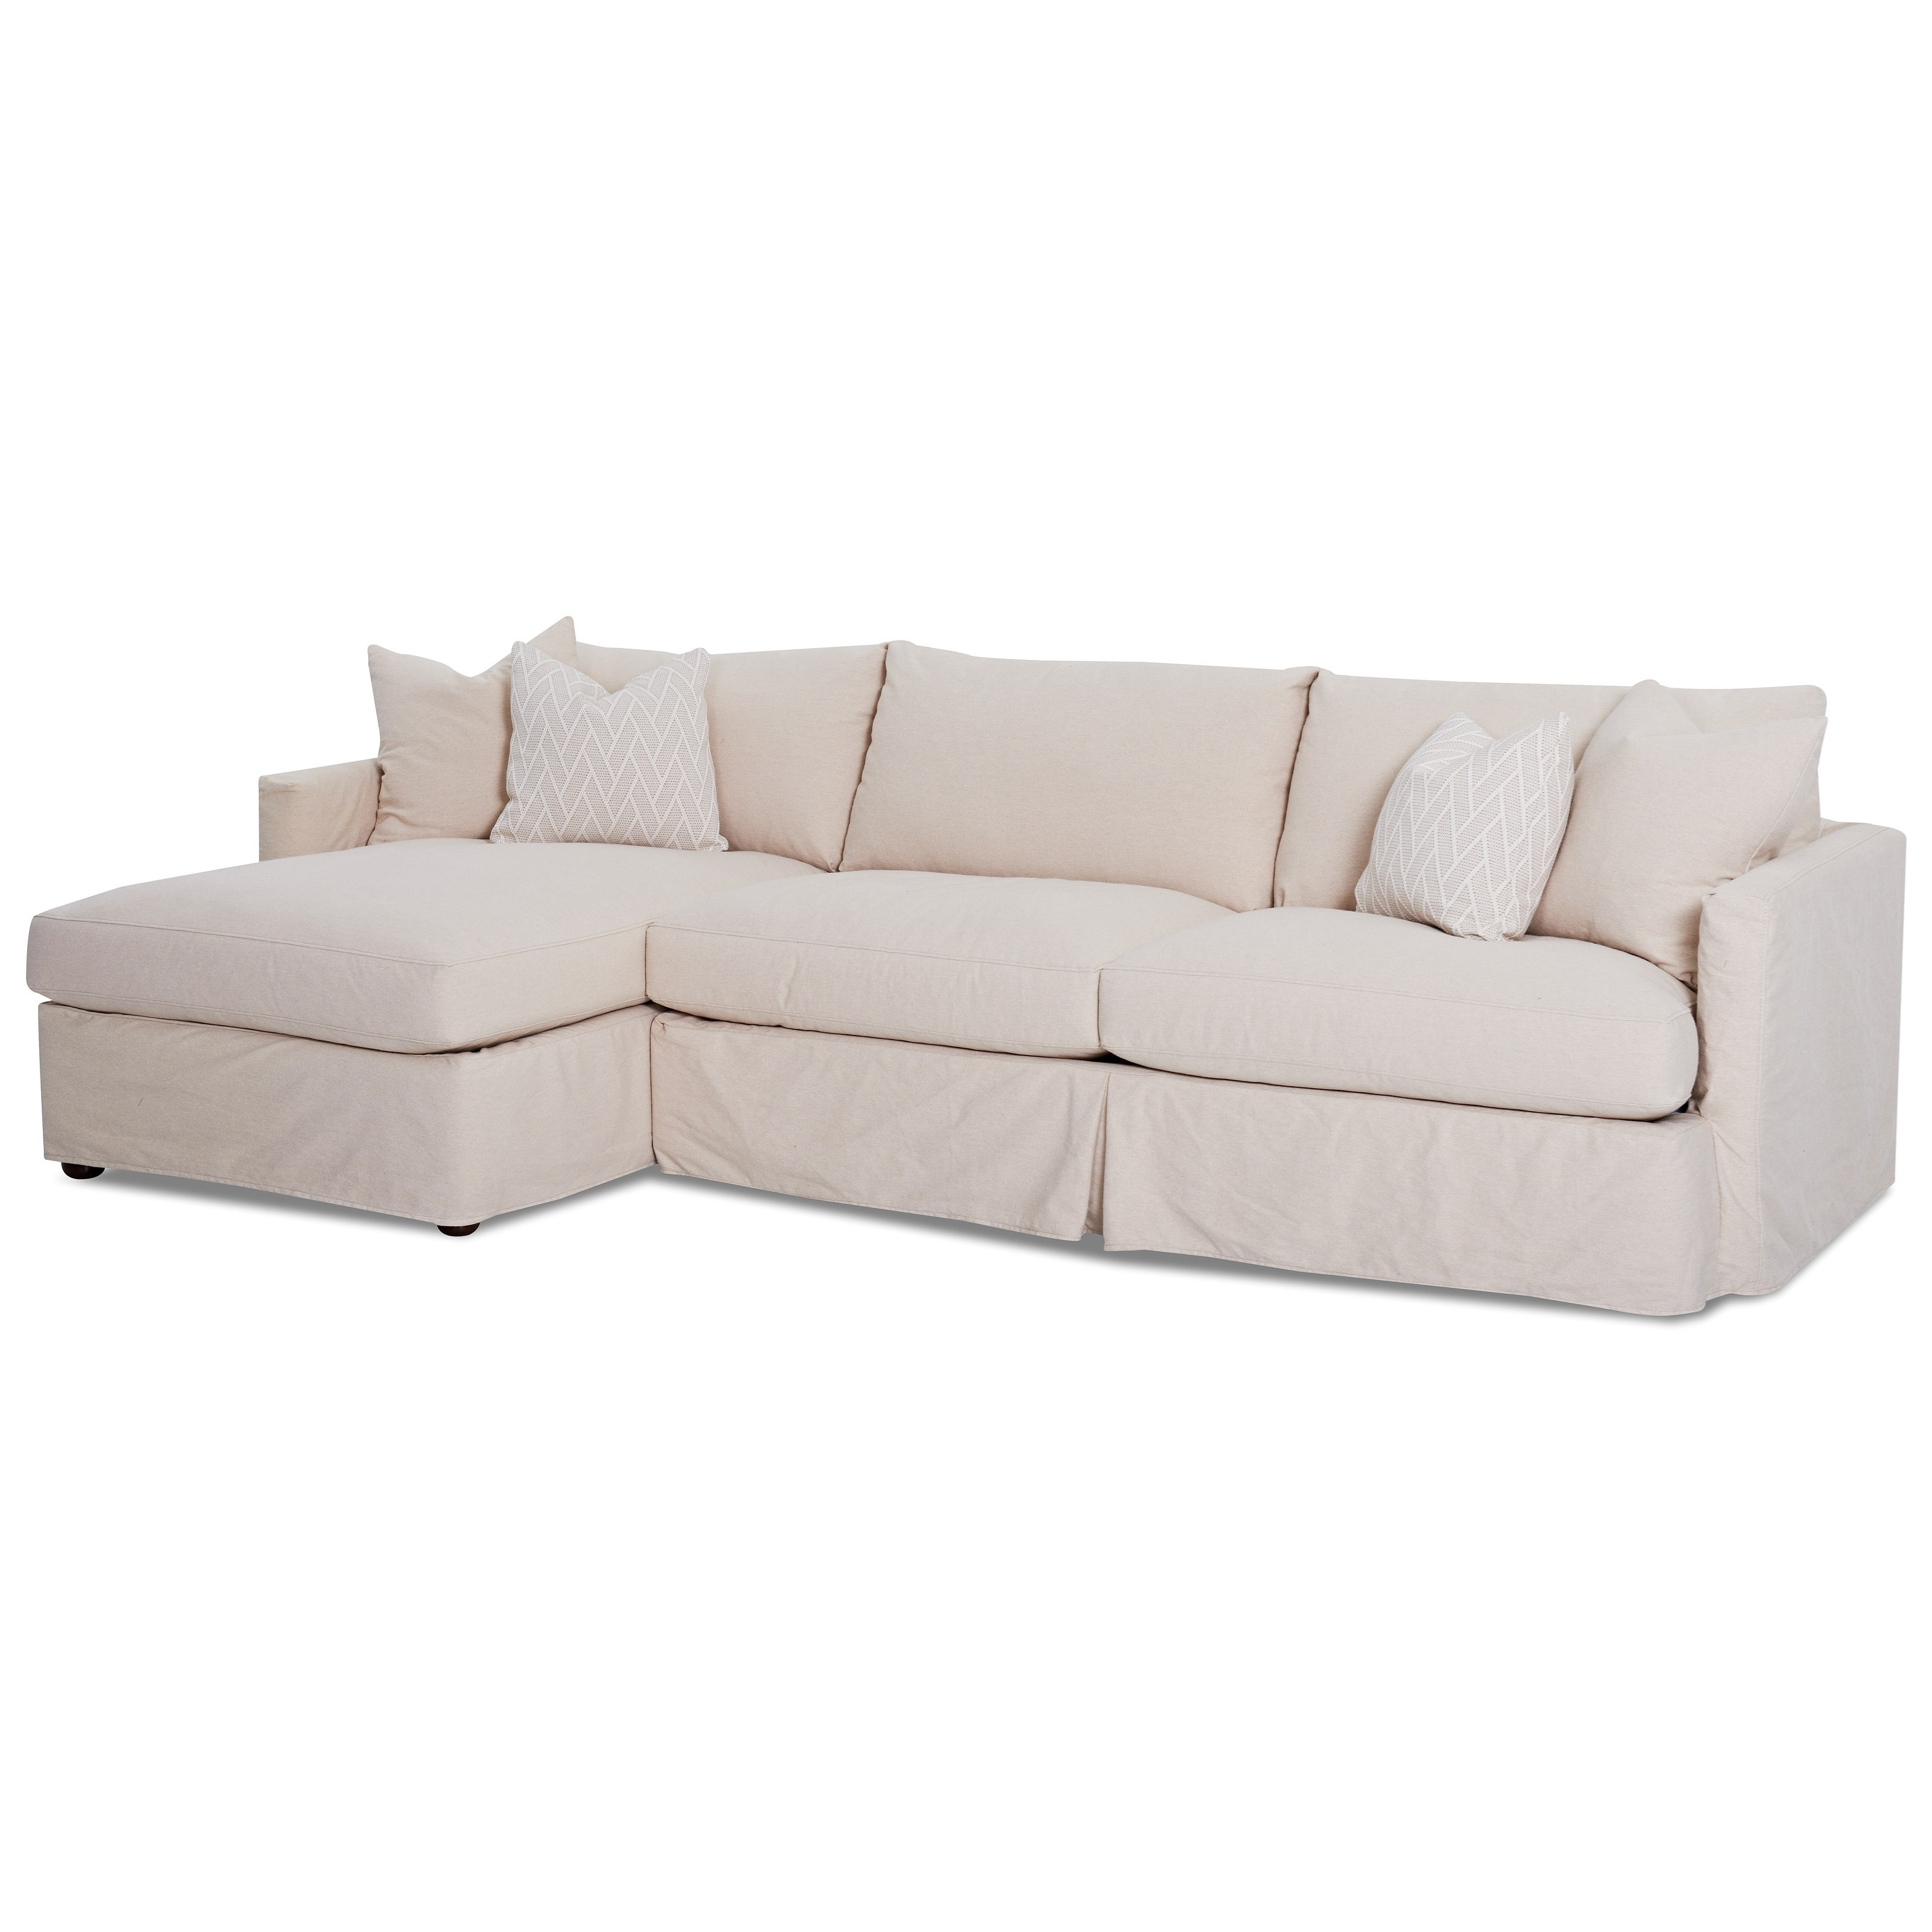 2 pc laf sectional sofa 4 seater set klaussner leisure with slipcover and